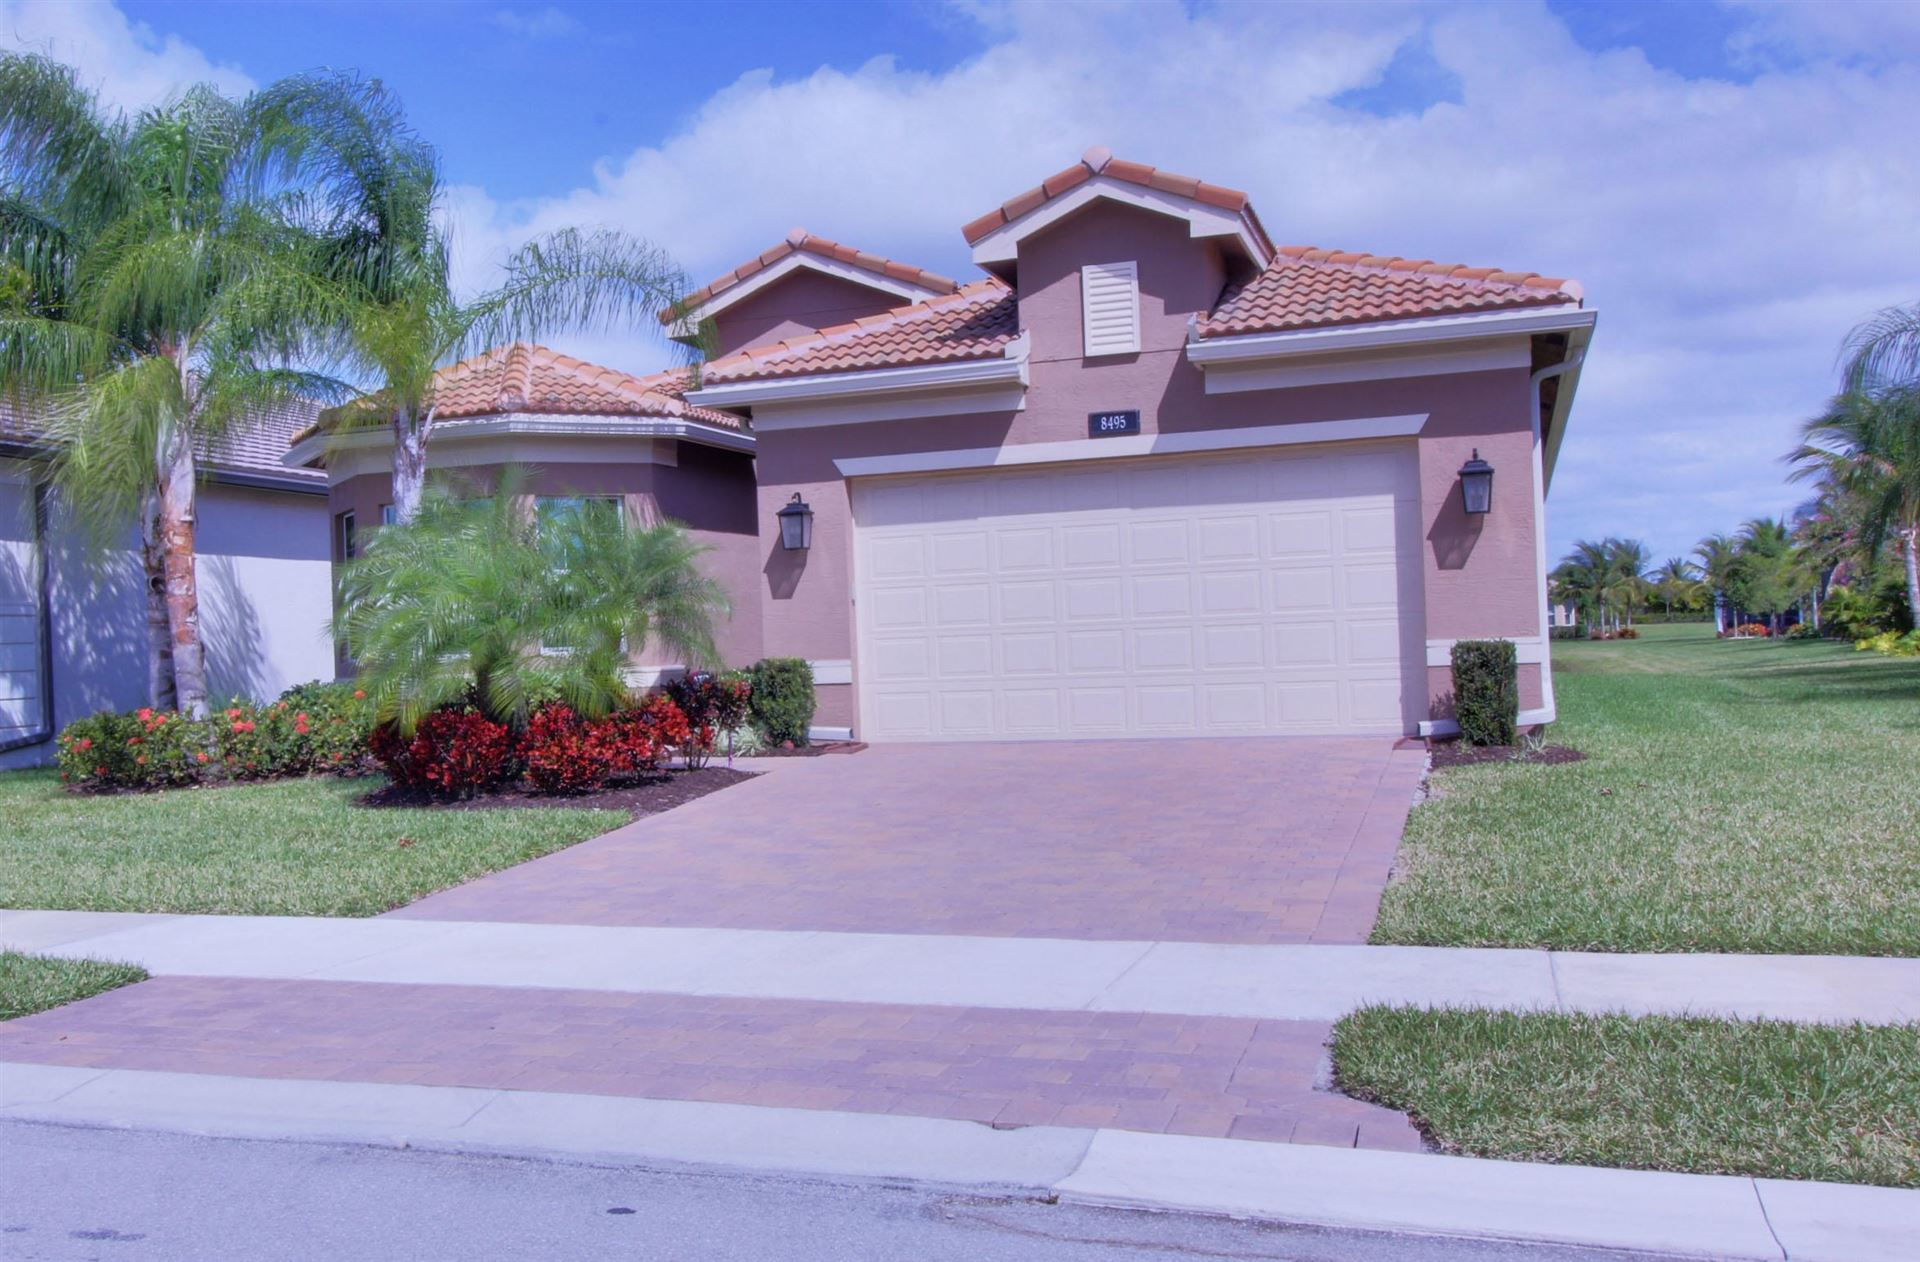 8495 Julian Alps Lane, Boynton Beach, FL 33473 - #: RX-10606331